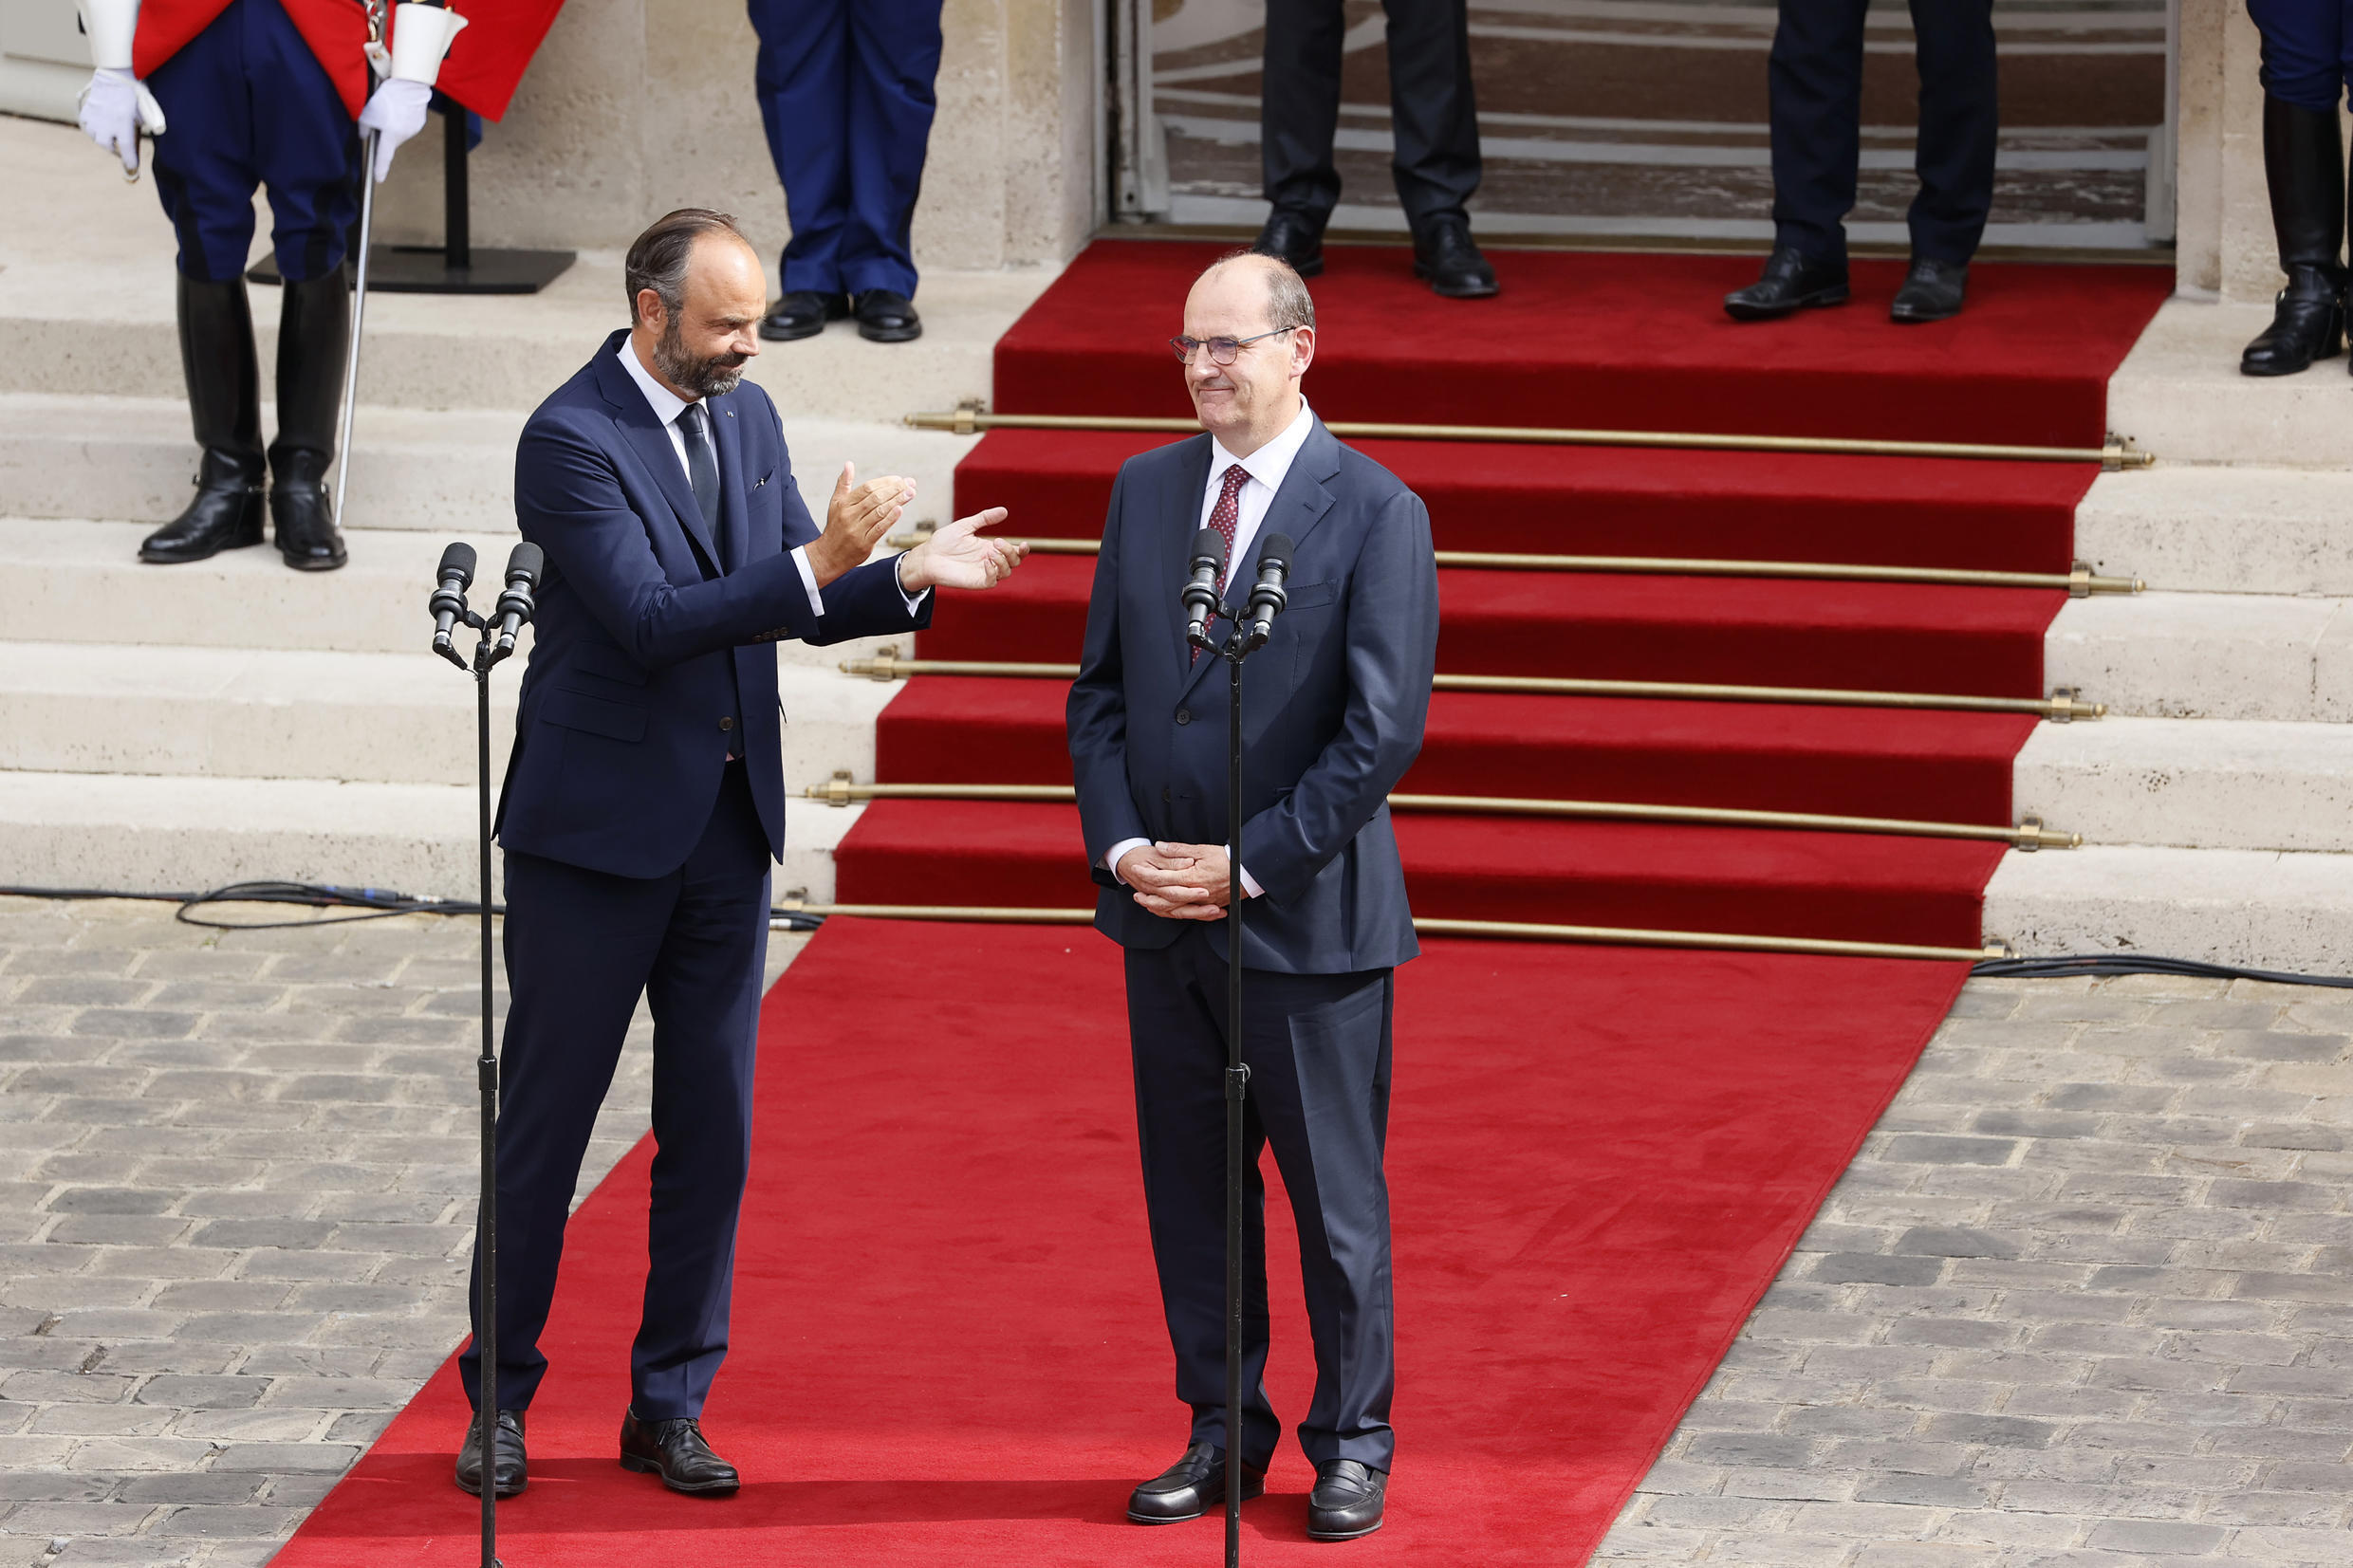 Former Prime Minister Édouard Philippe applauds his successor, Jean Castex, in the courtyard of the Hotel Matignon, July 3, 2020.